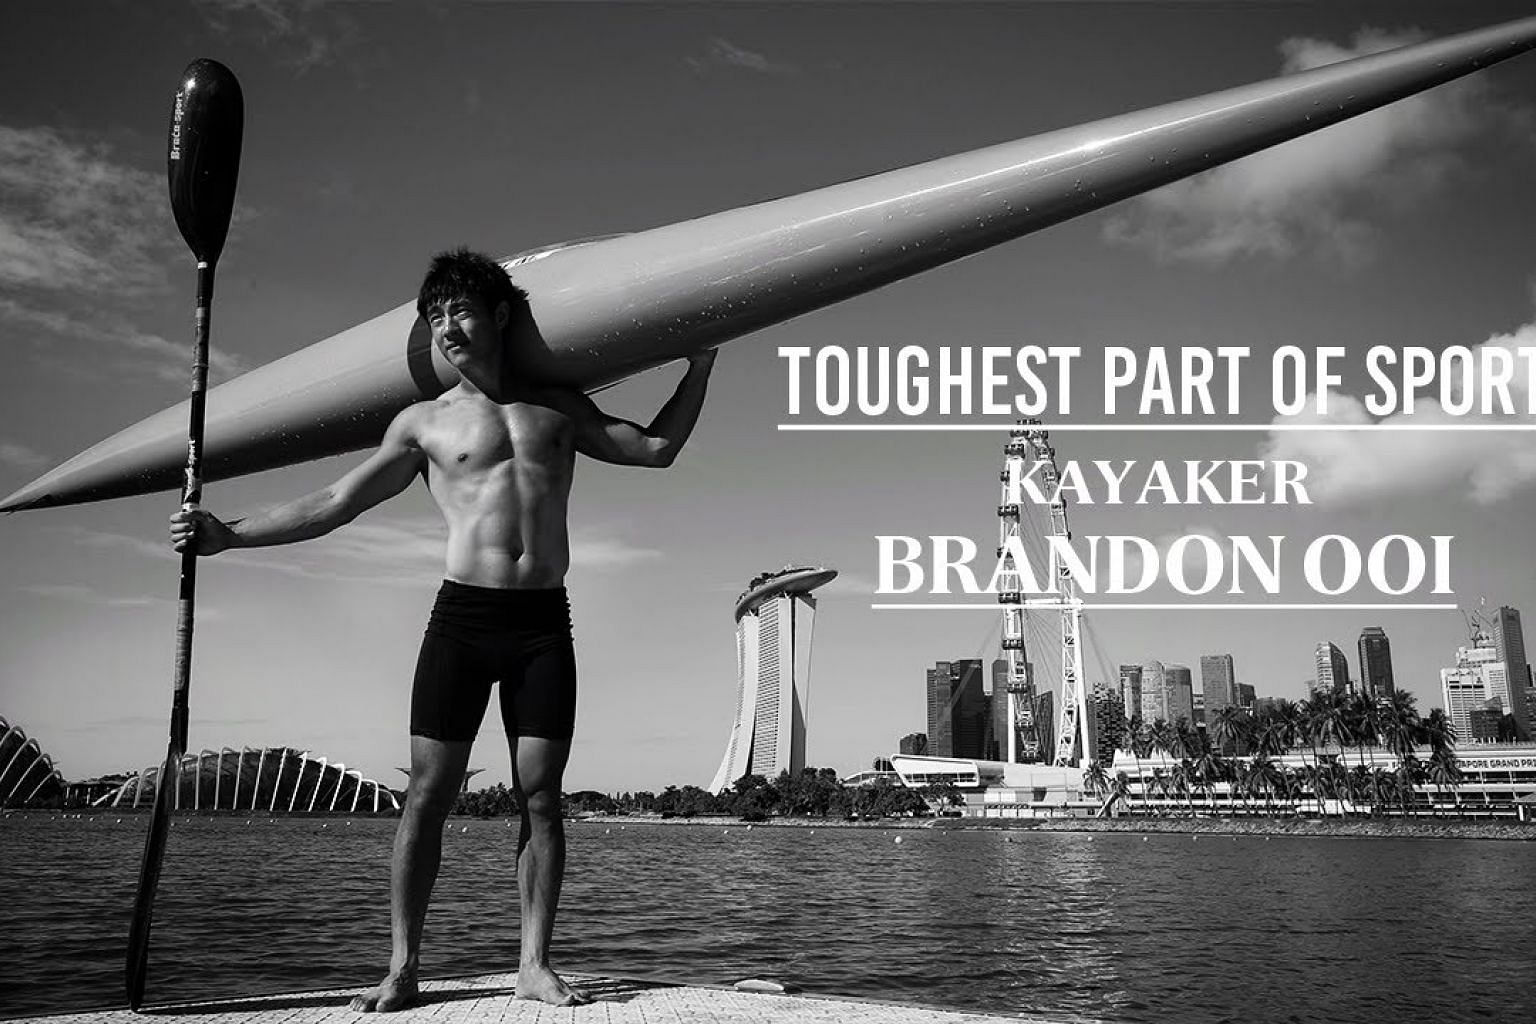 Driven to distraction | Kayaker Brandon Ooi | Toughest Part of Sport